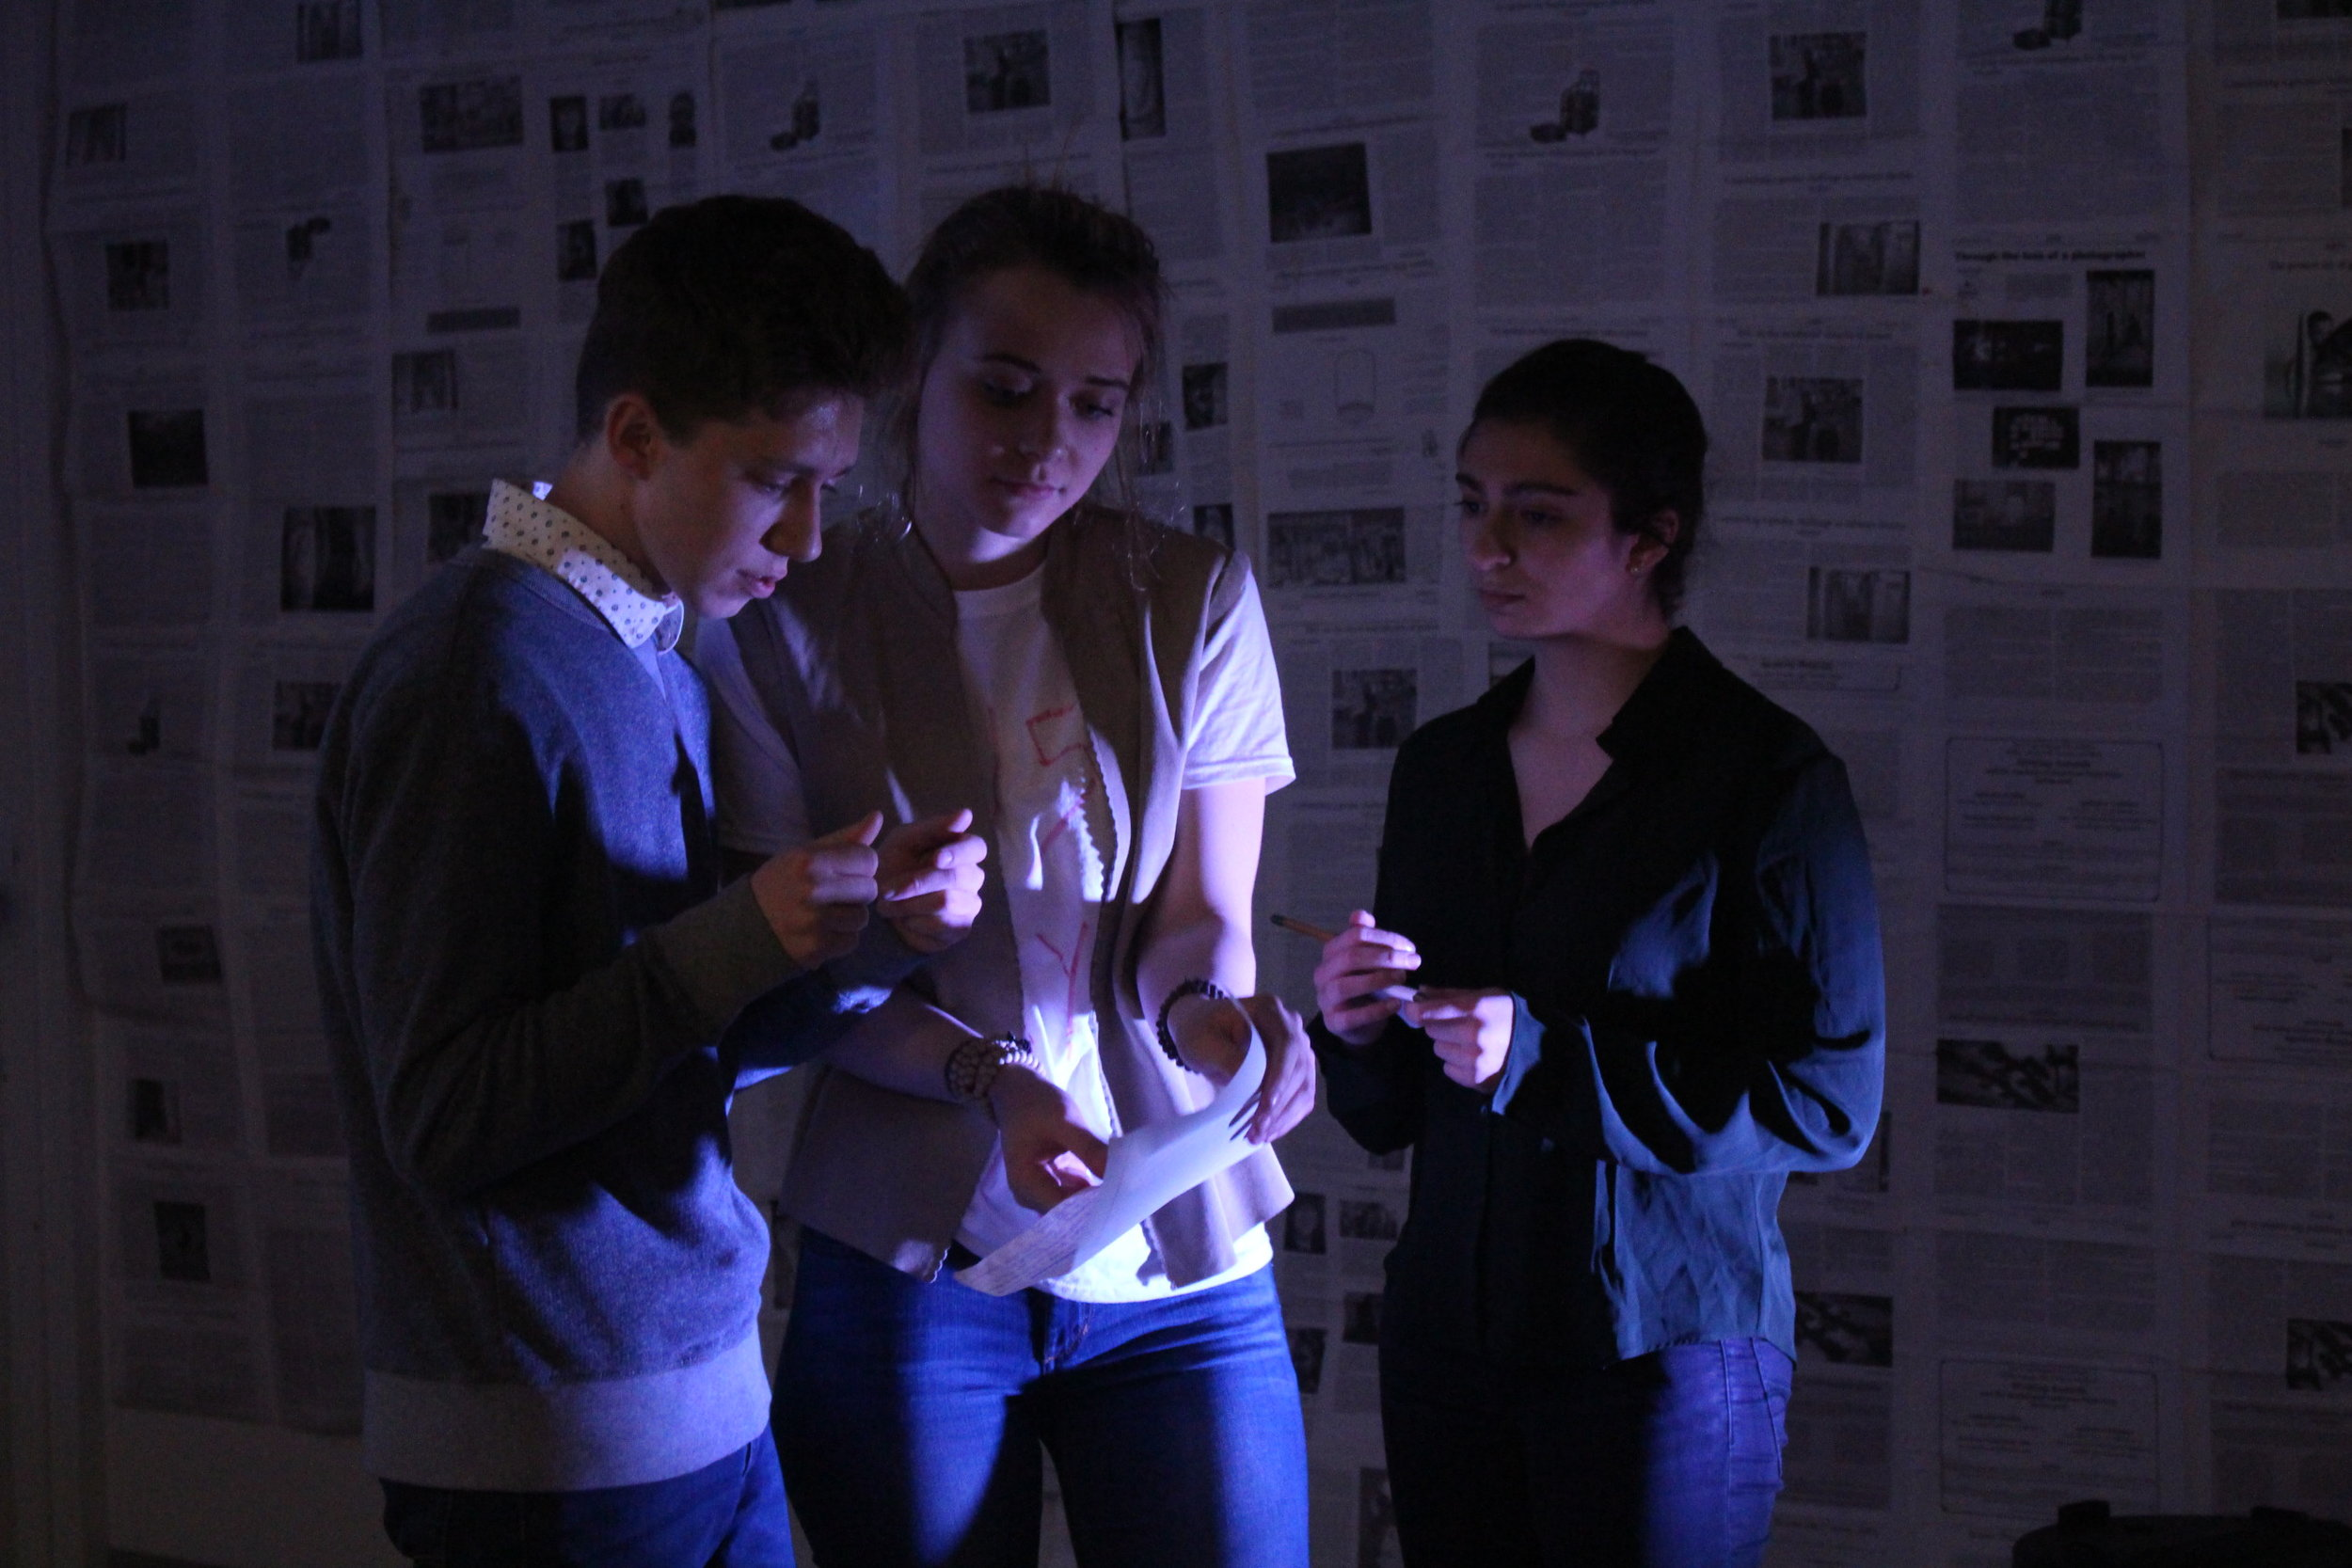 "(L to R) Austin Yoder, Ona Martini, and Sydney Rutigliano in ""The Untold Yippie Project"" by Becca Schlossberg."